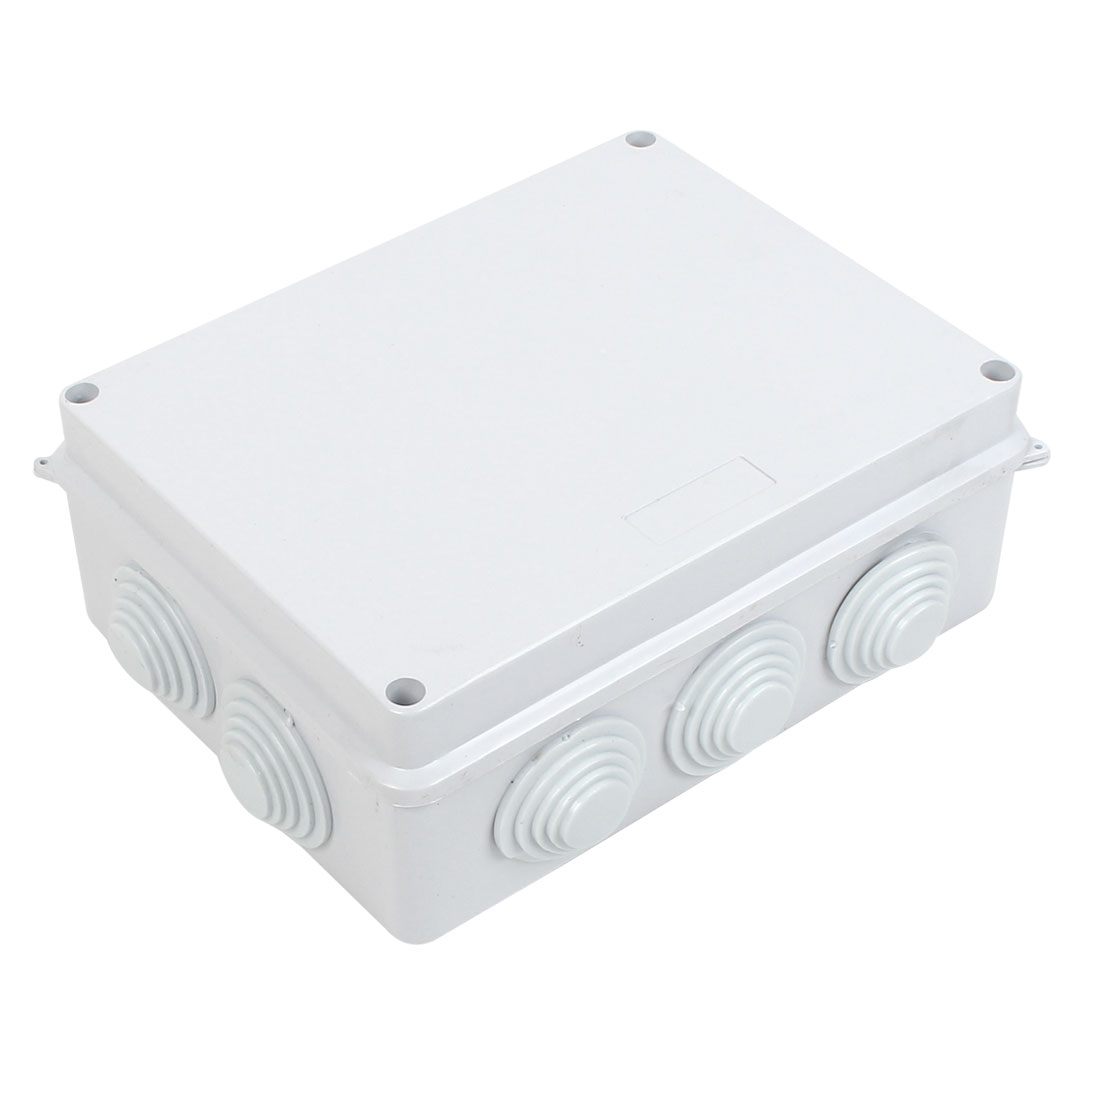 White ABS IP65 Waterproof EnClosure Junction Box 200mmx155mmx80mm